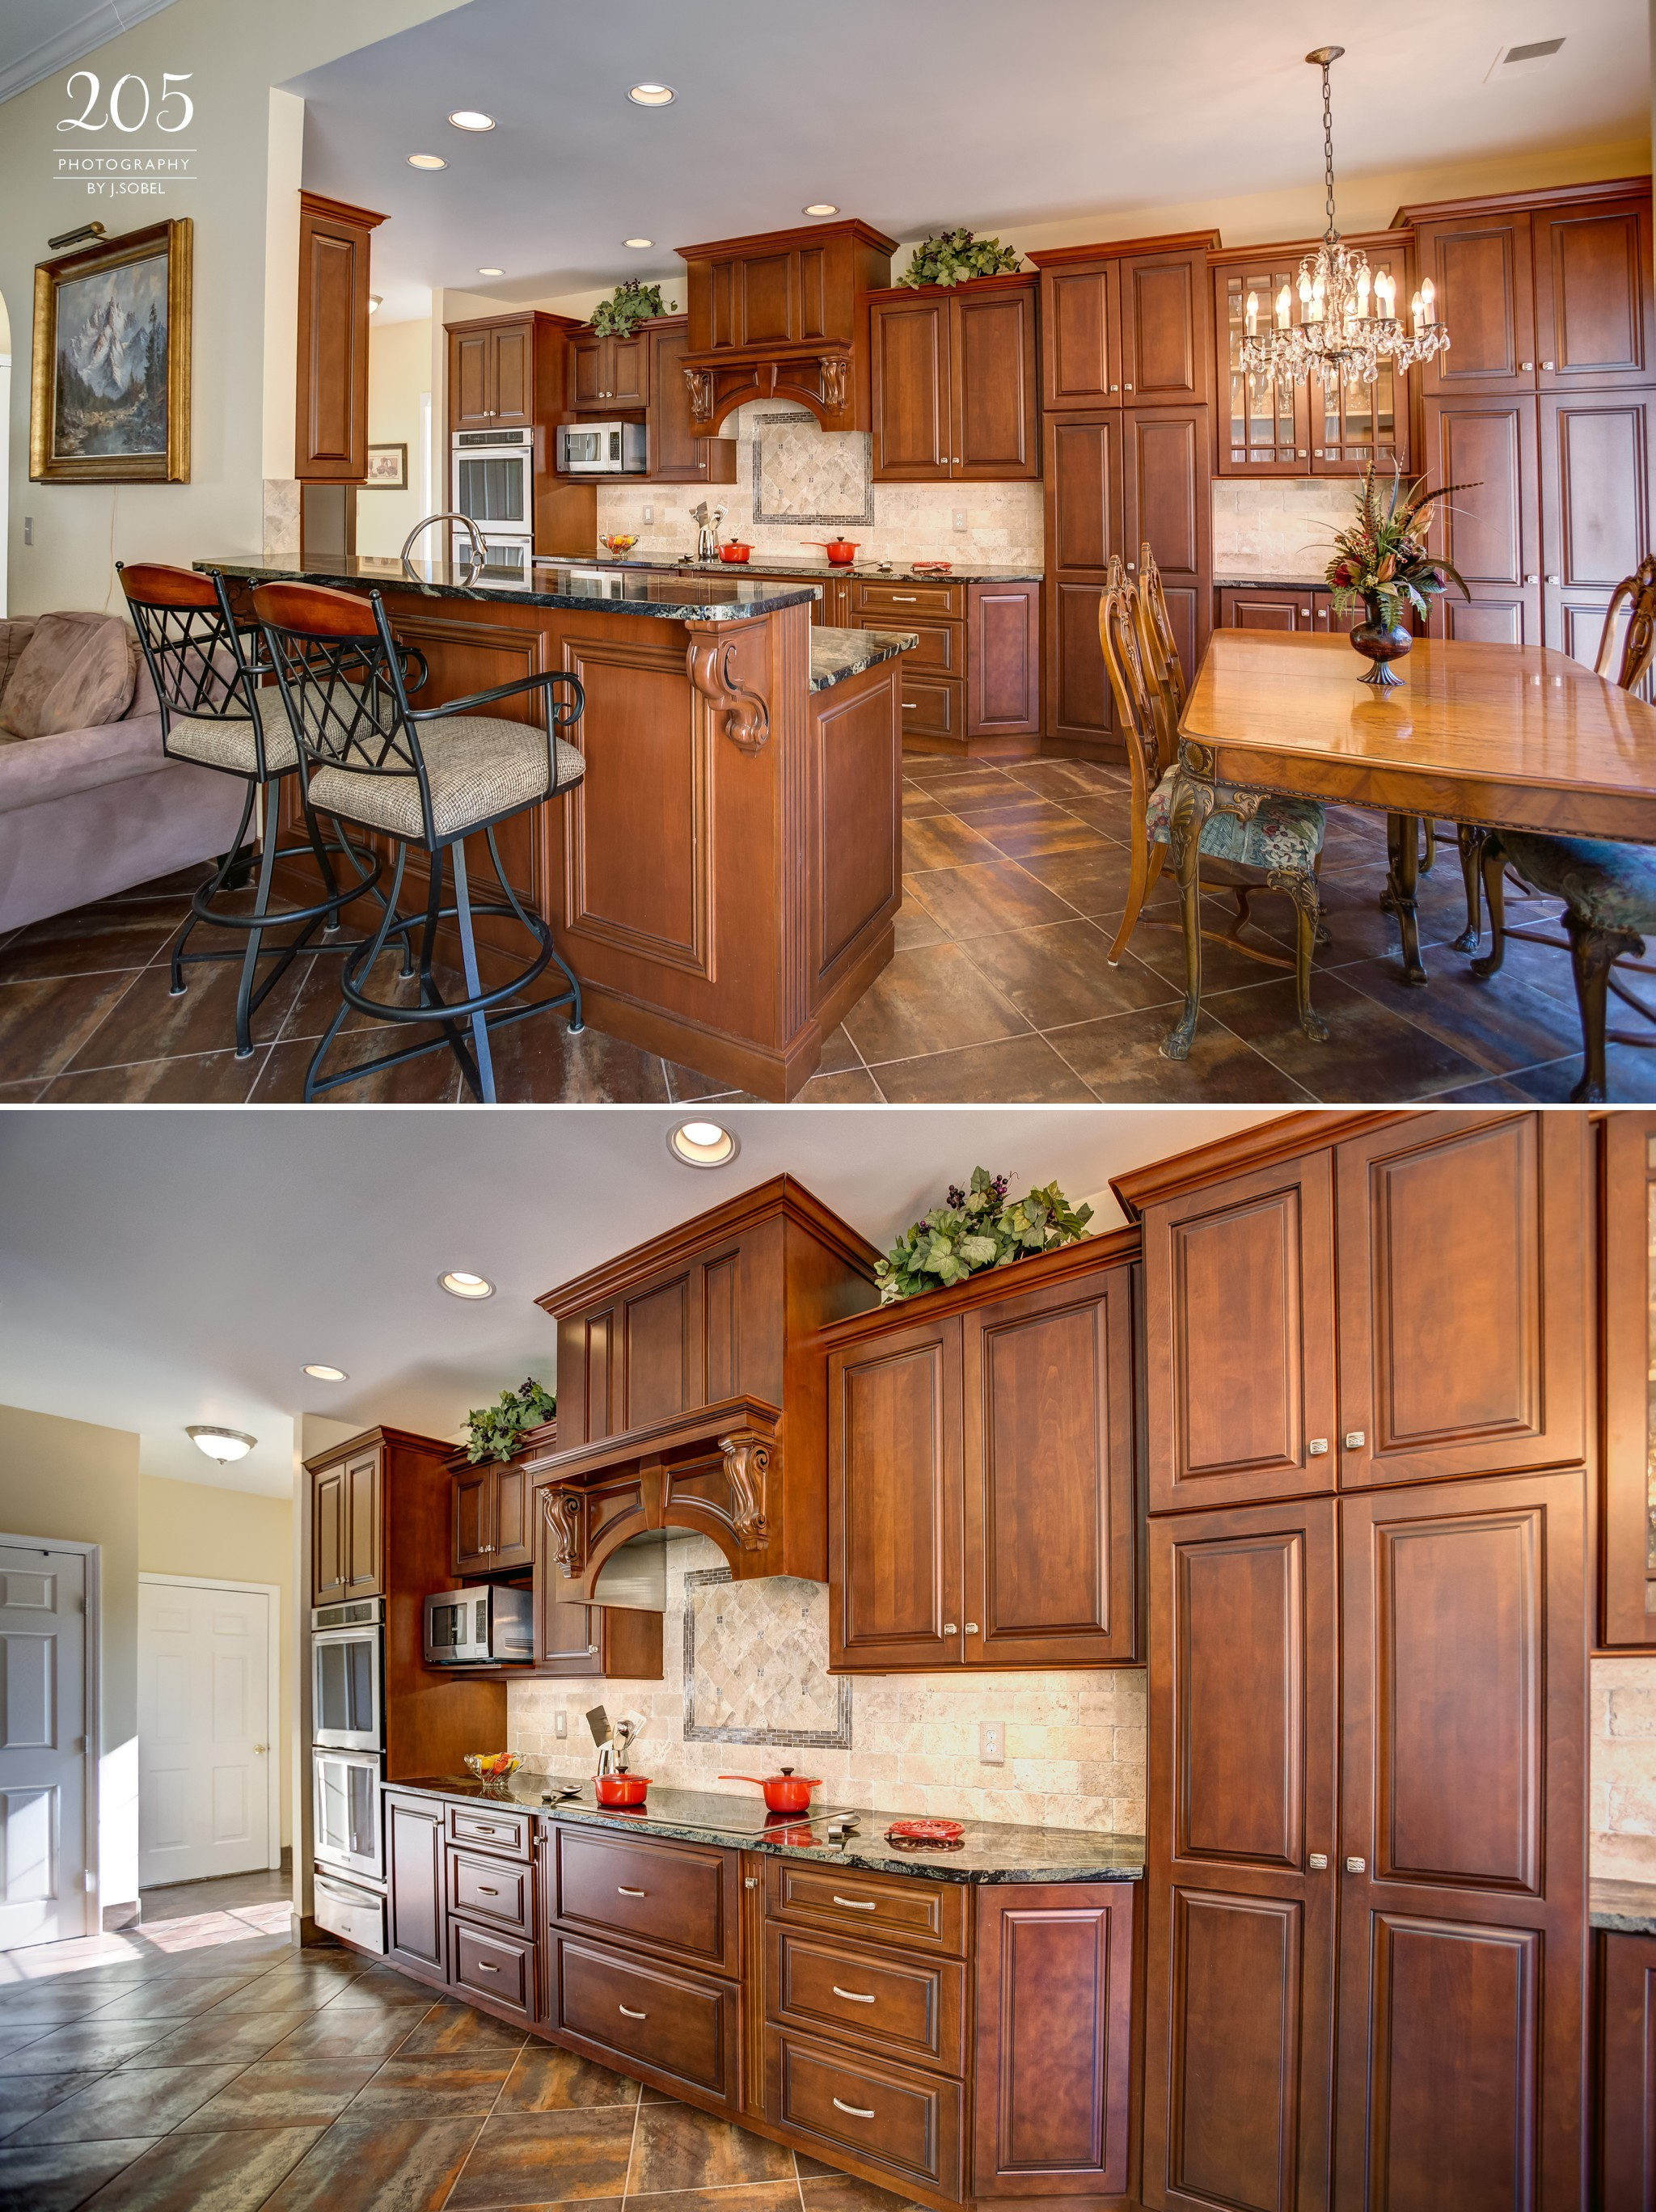 Counter Dimensions - Kitchen Remodel in Chelsea, AL — 205 Photography